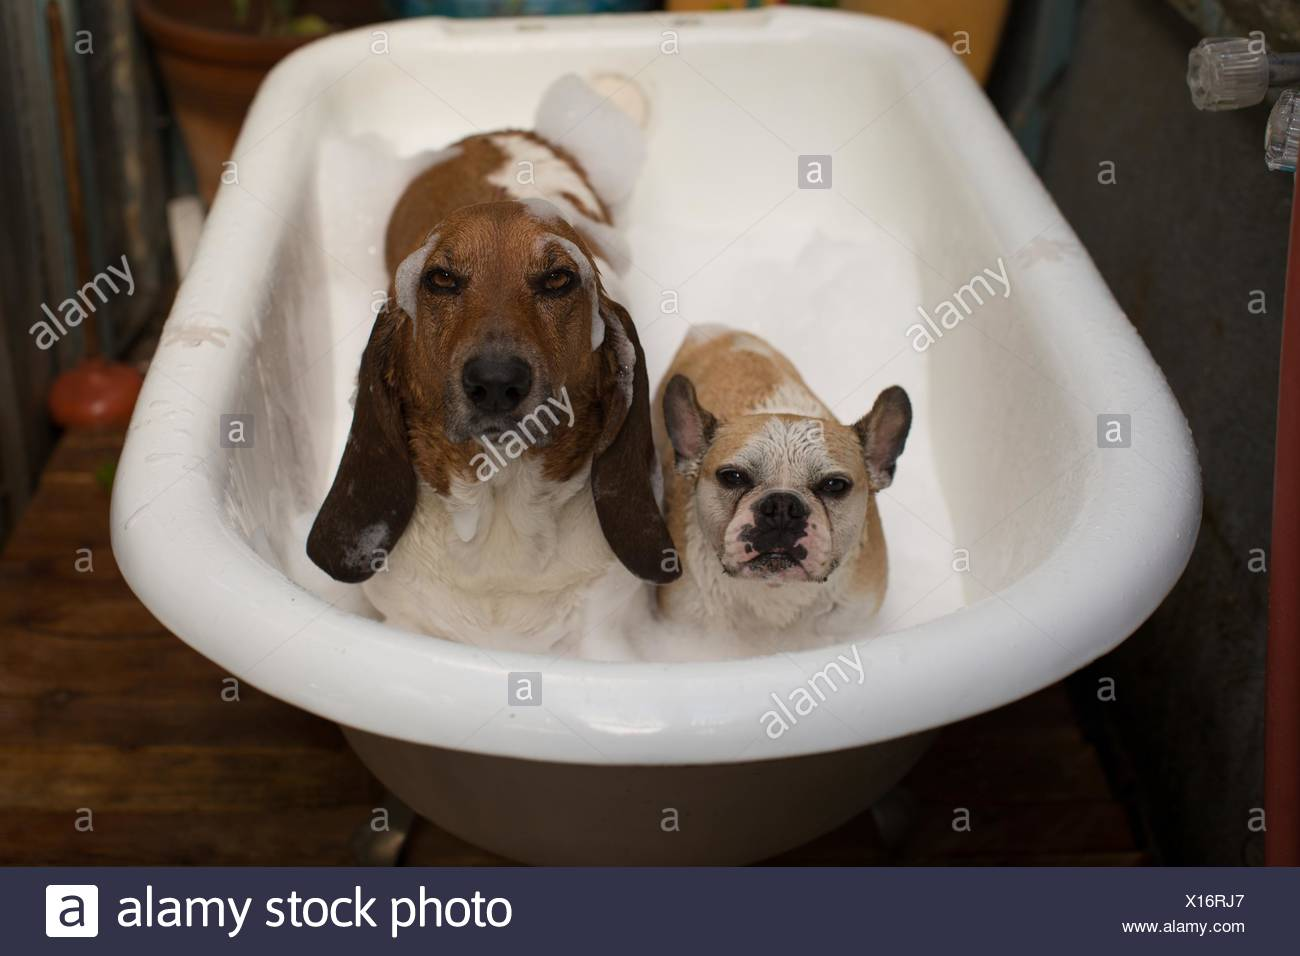 Basset hound and French bulldog in bathtub covered in soap suds looking at camera - Stock Image